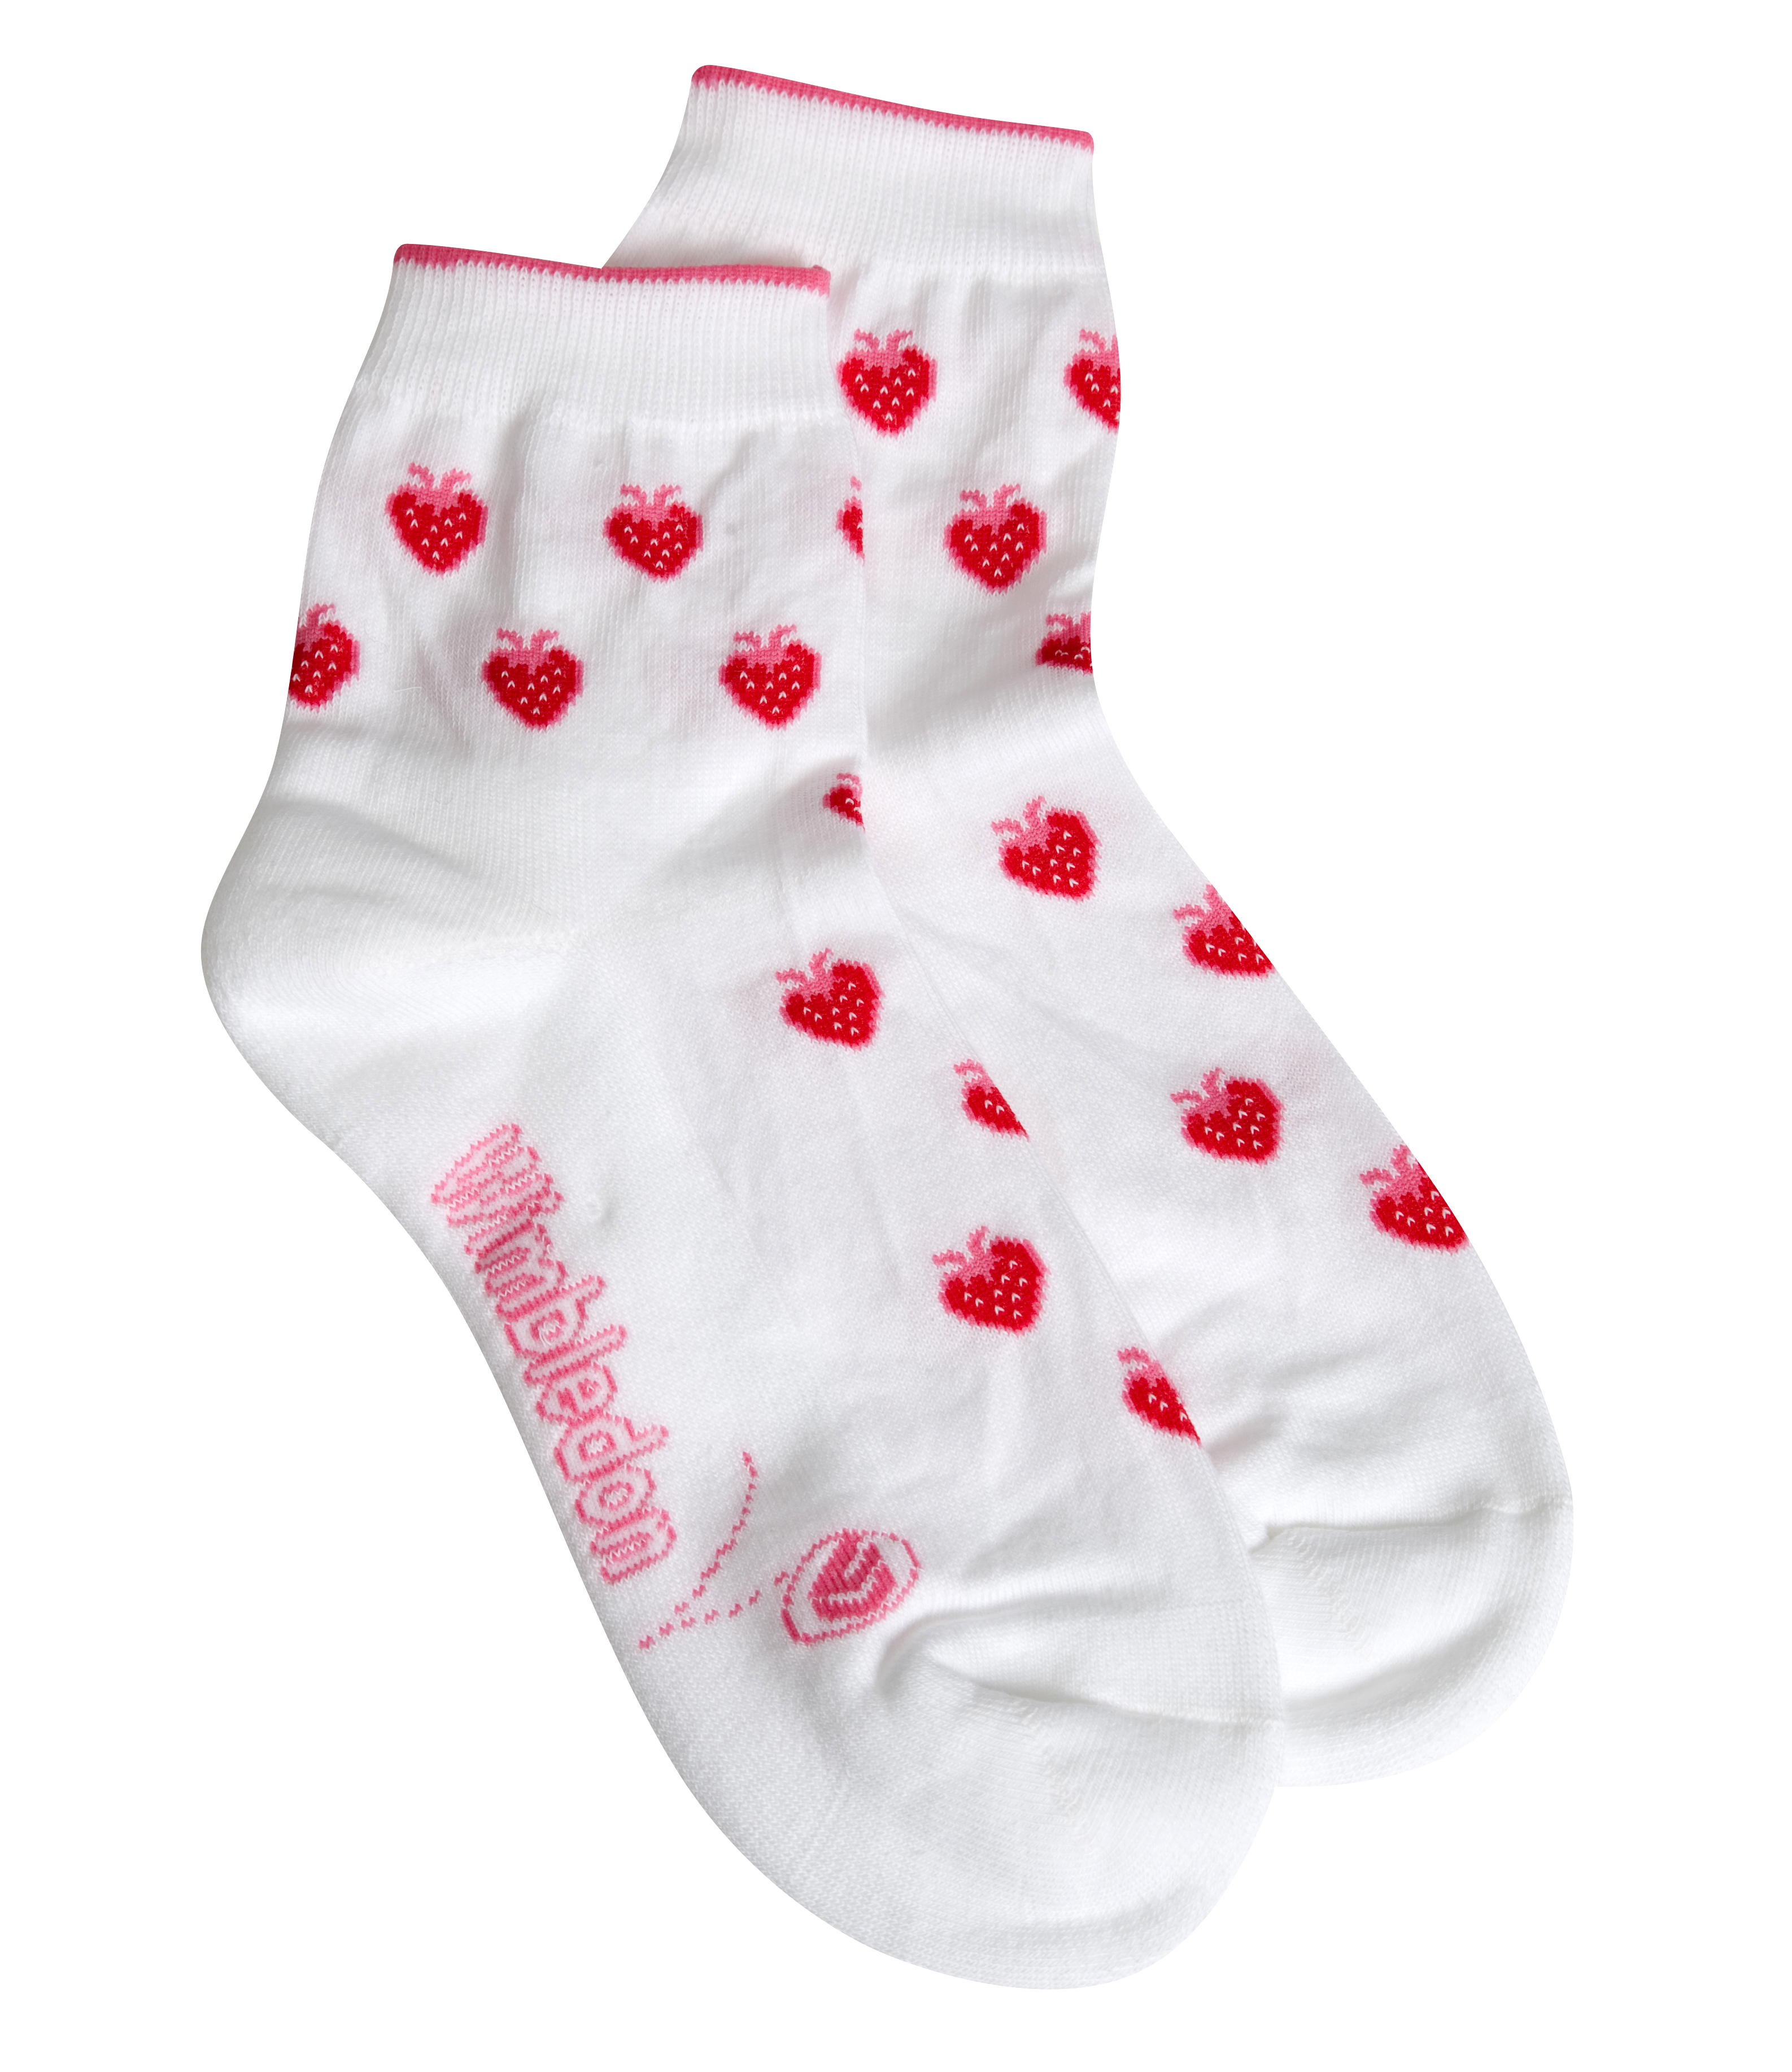 Wimbledon Strawberry Sock - White/Pink - Ladies